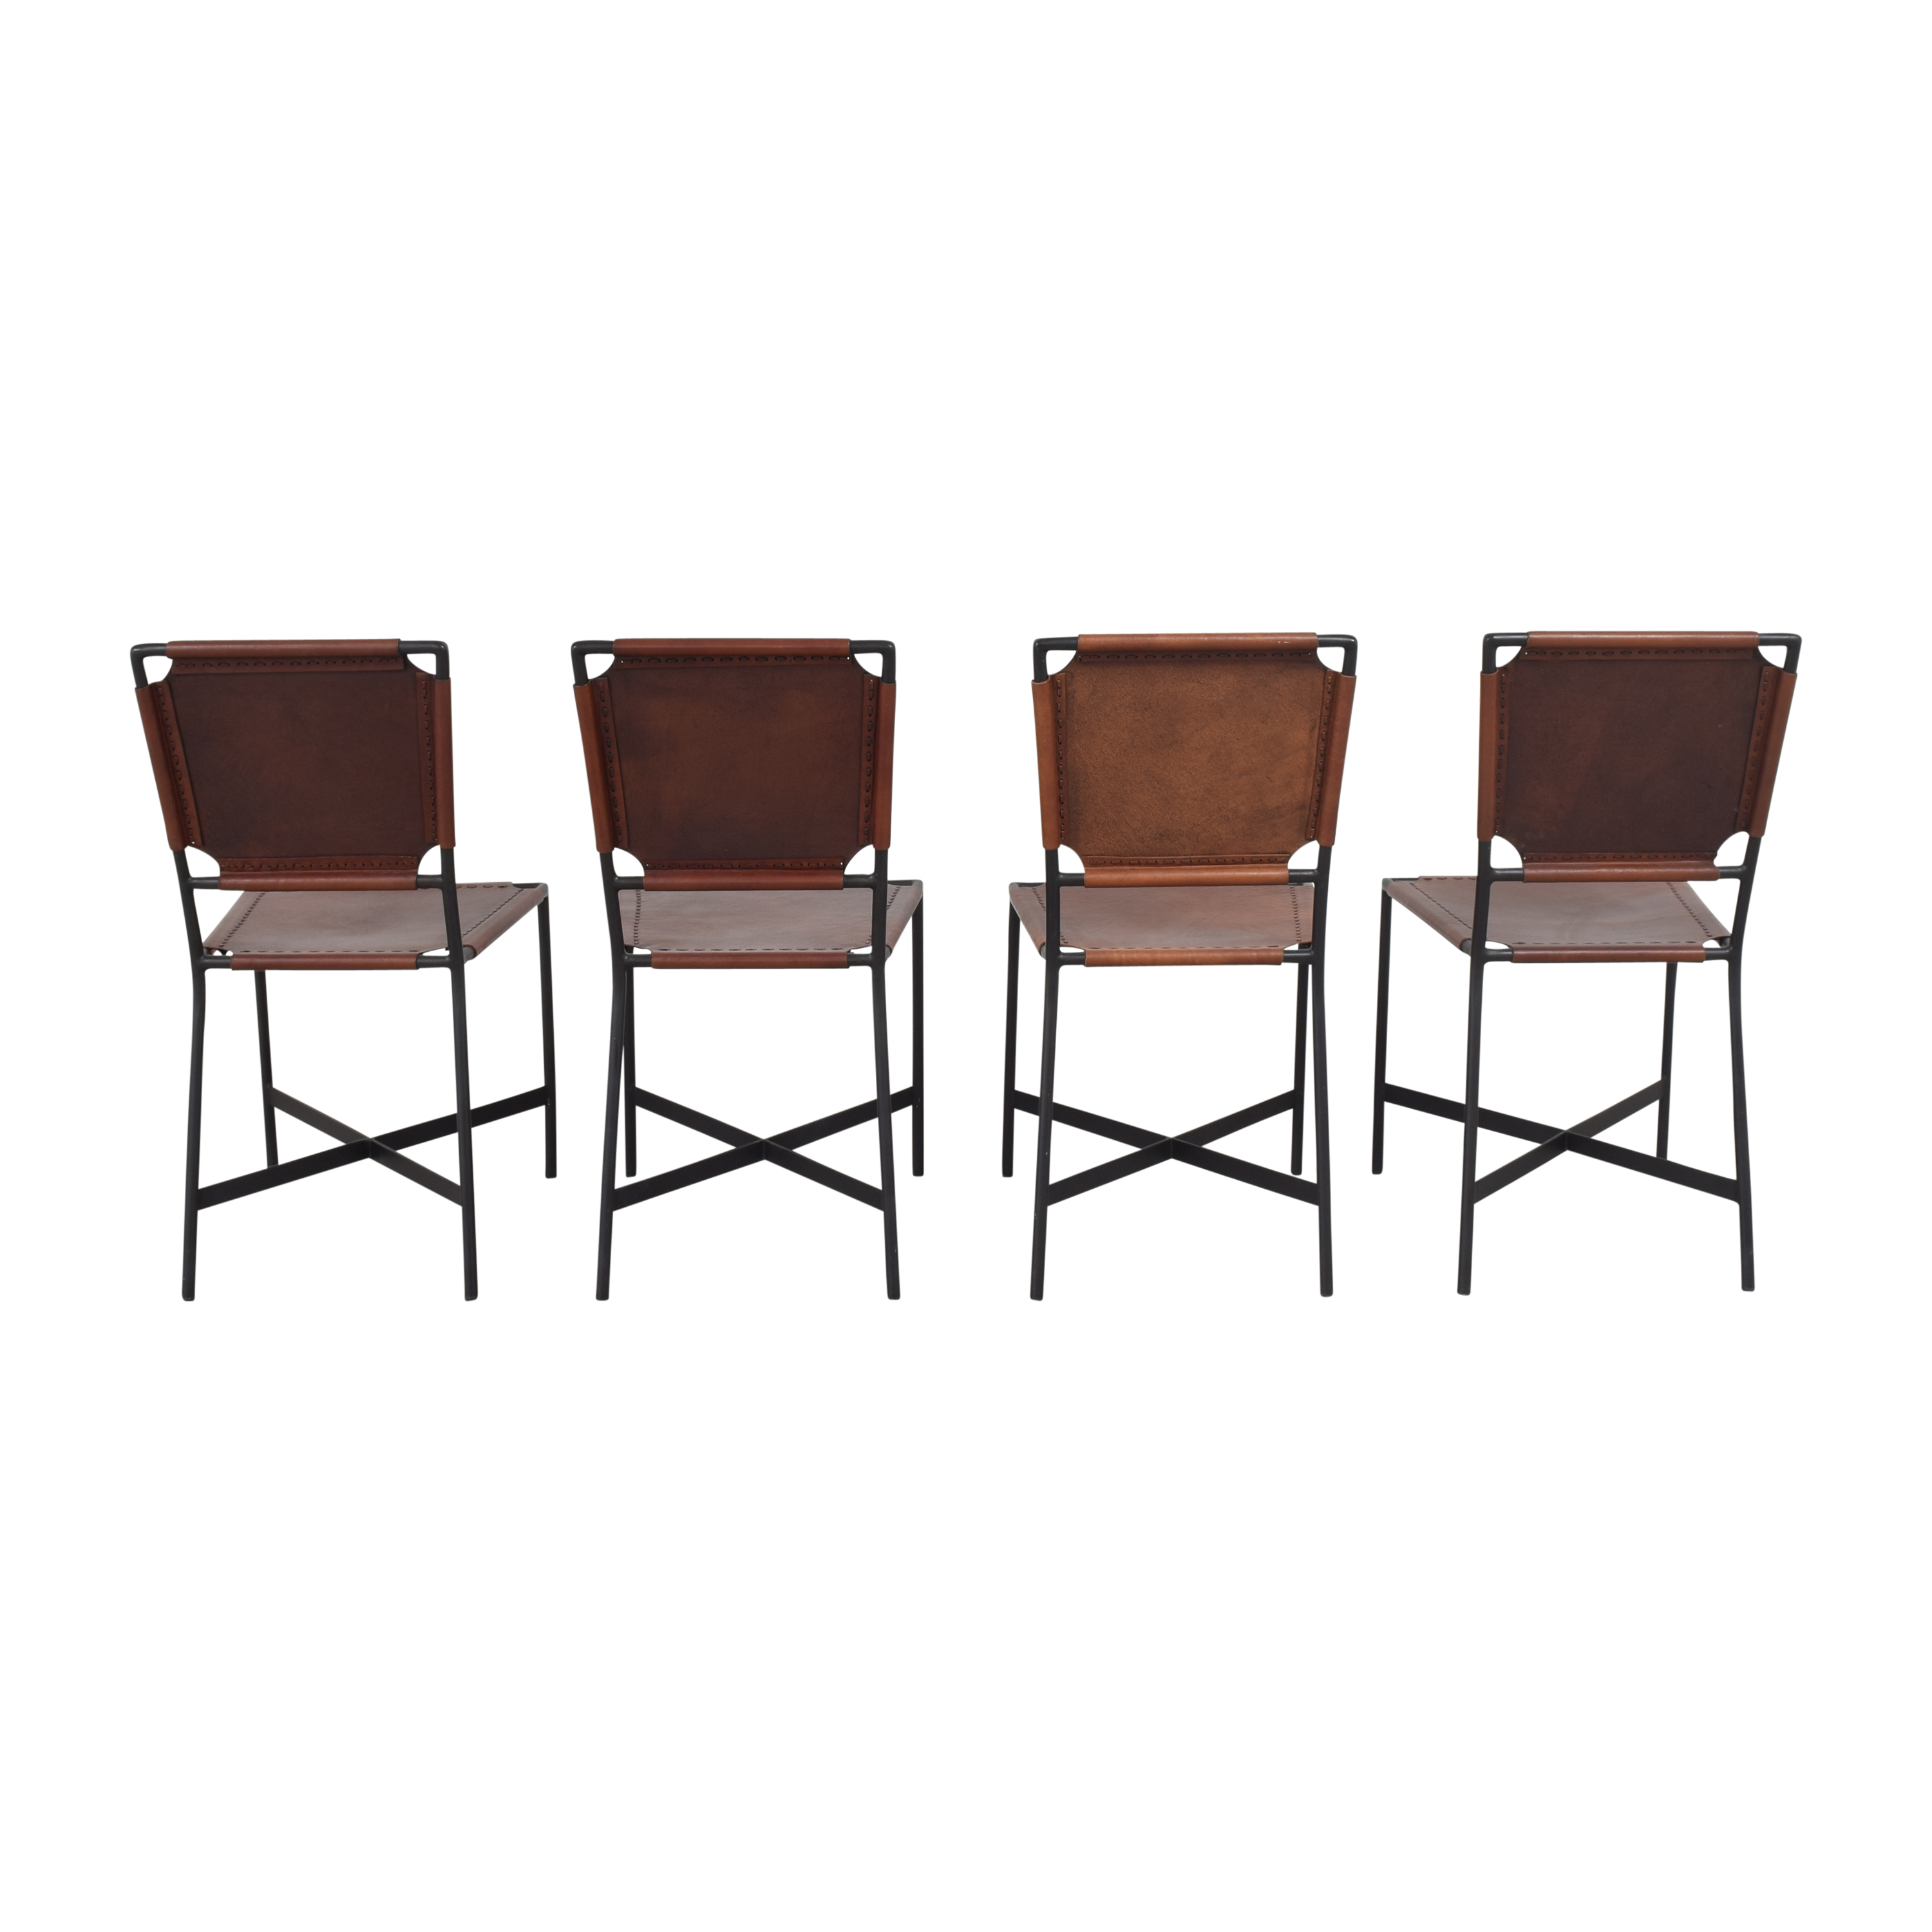 Crate & Barrel Crate & Barrel Laredo Dining Chairs nyc